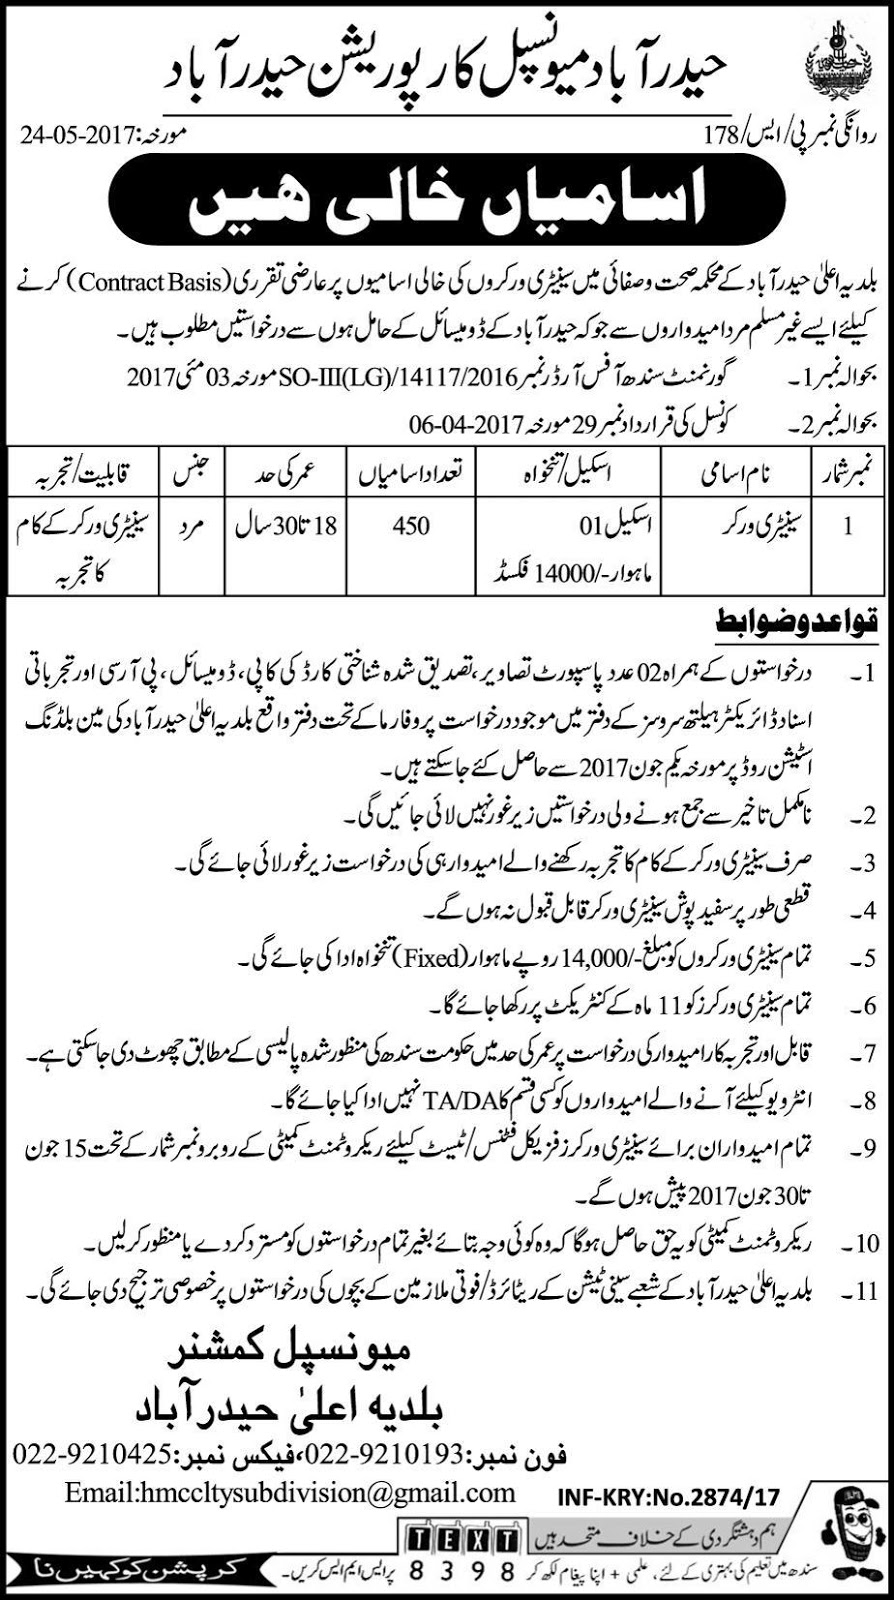 Sanitary Workers jobs in Hyderabad Municipal Corporation Sindh May 2017